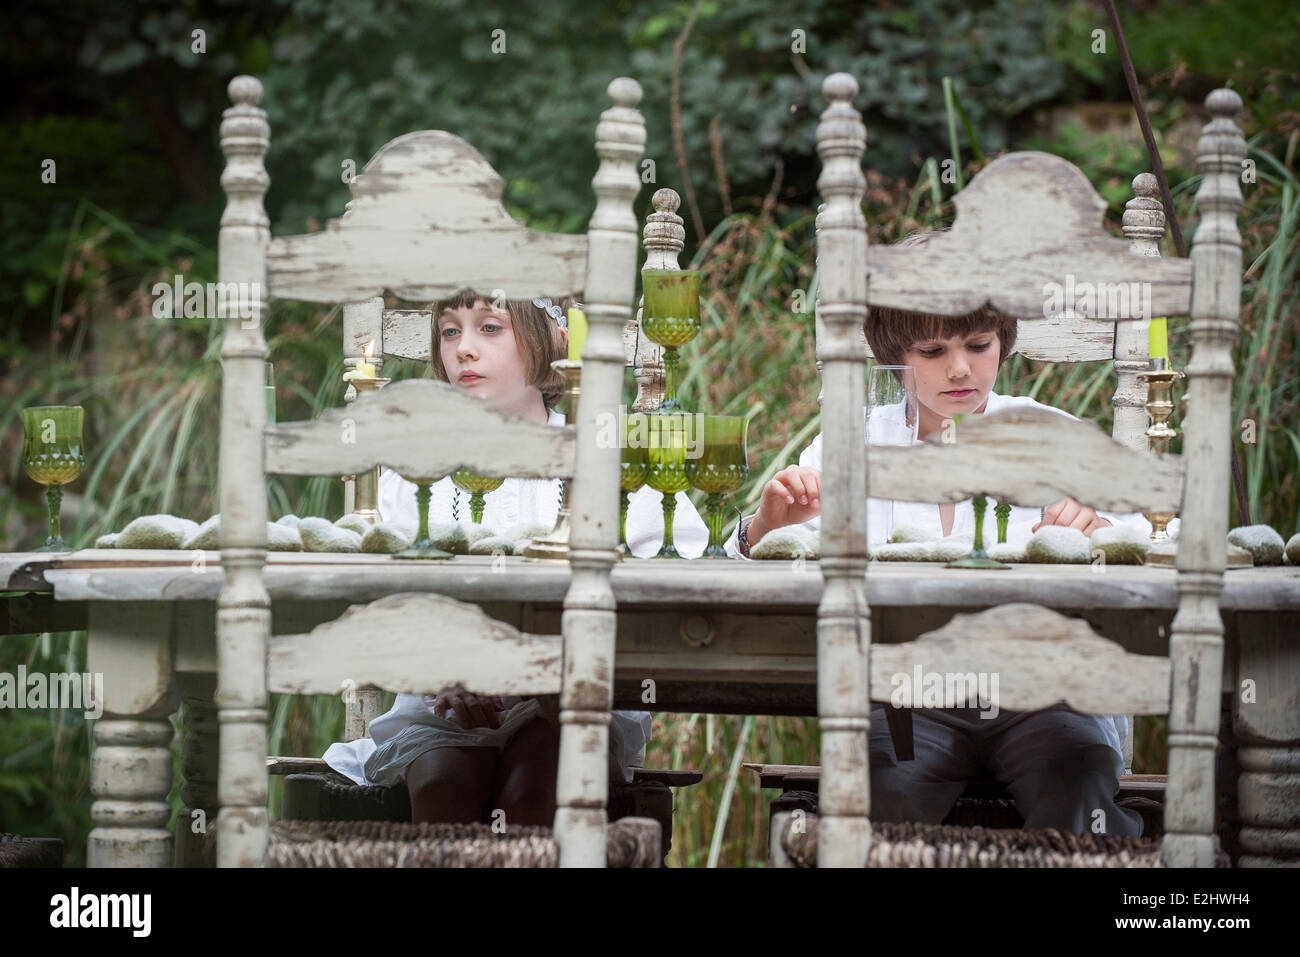 Children seated at dining room table outdoors - Stock Image